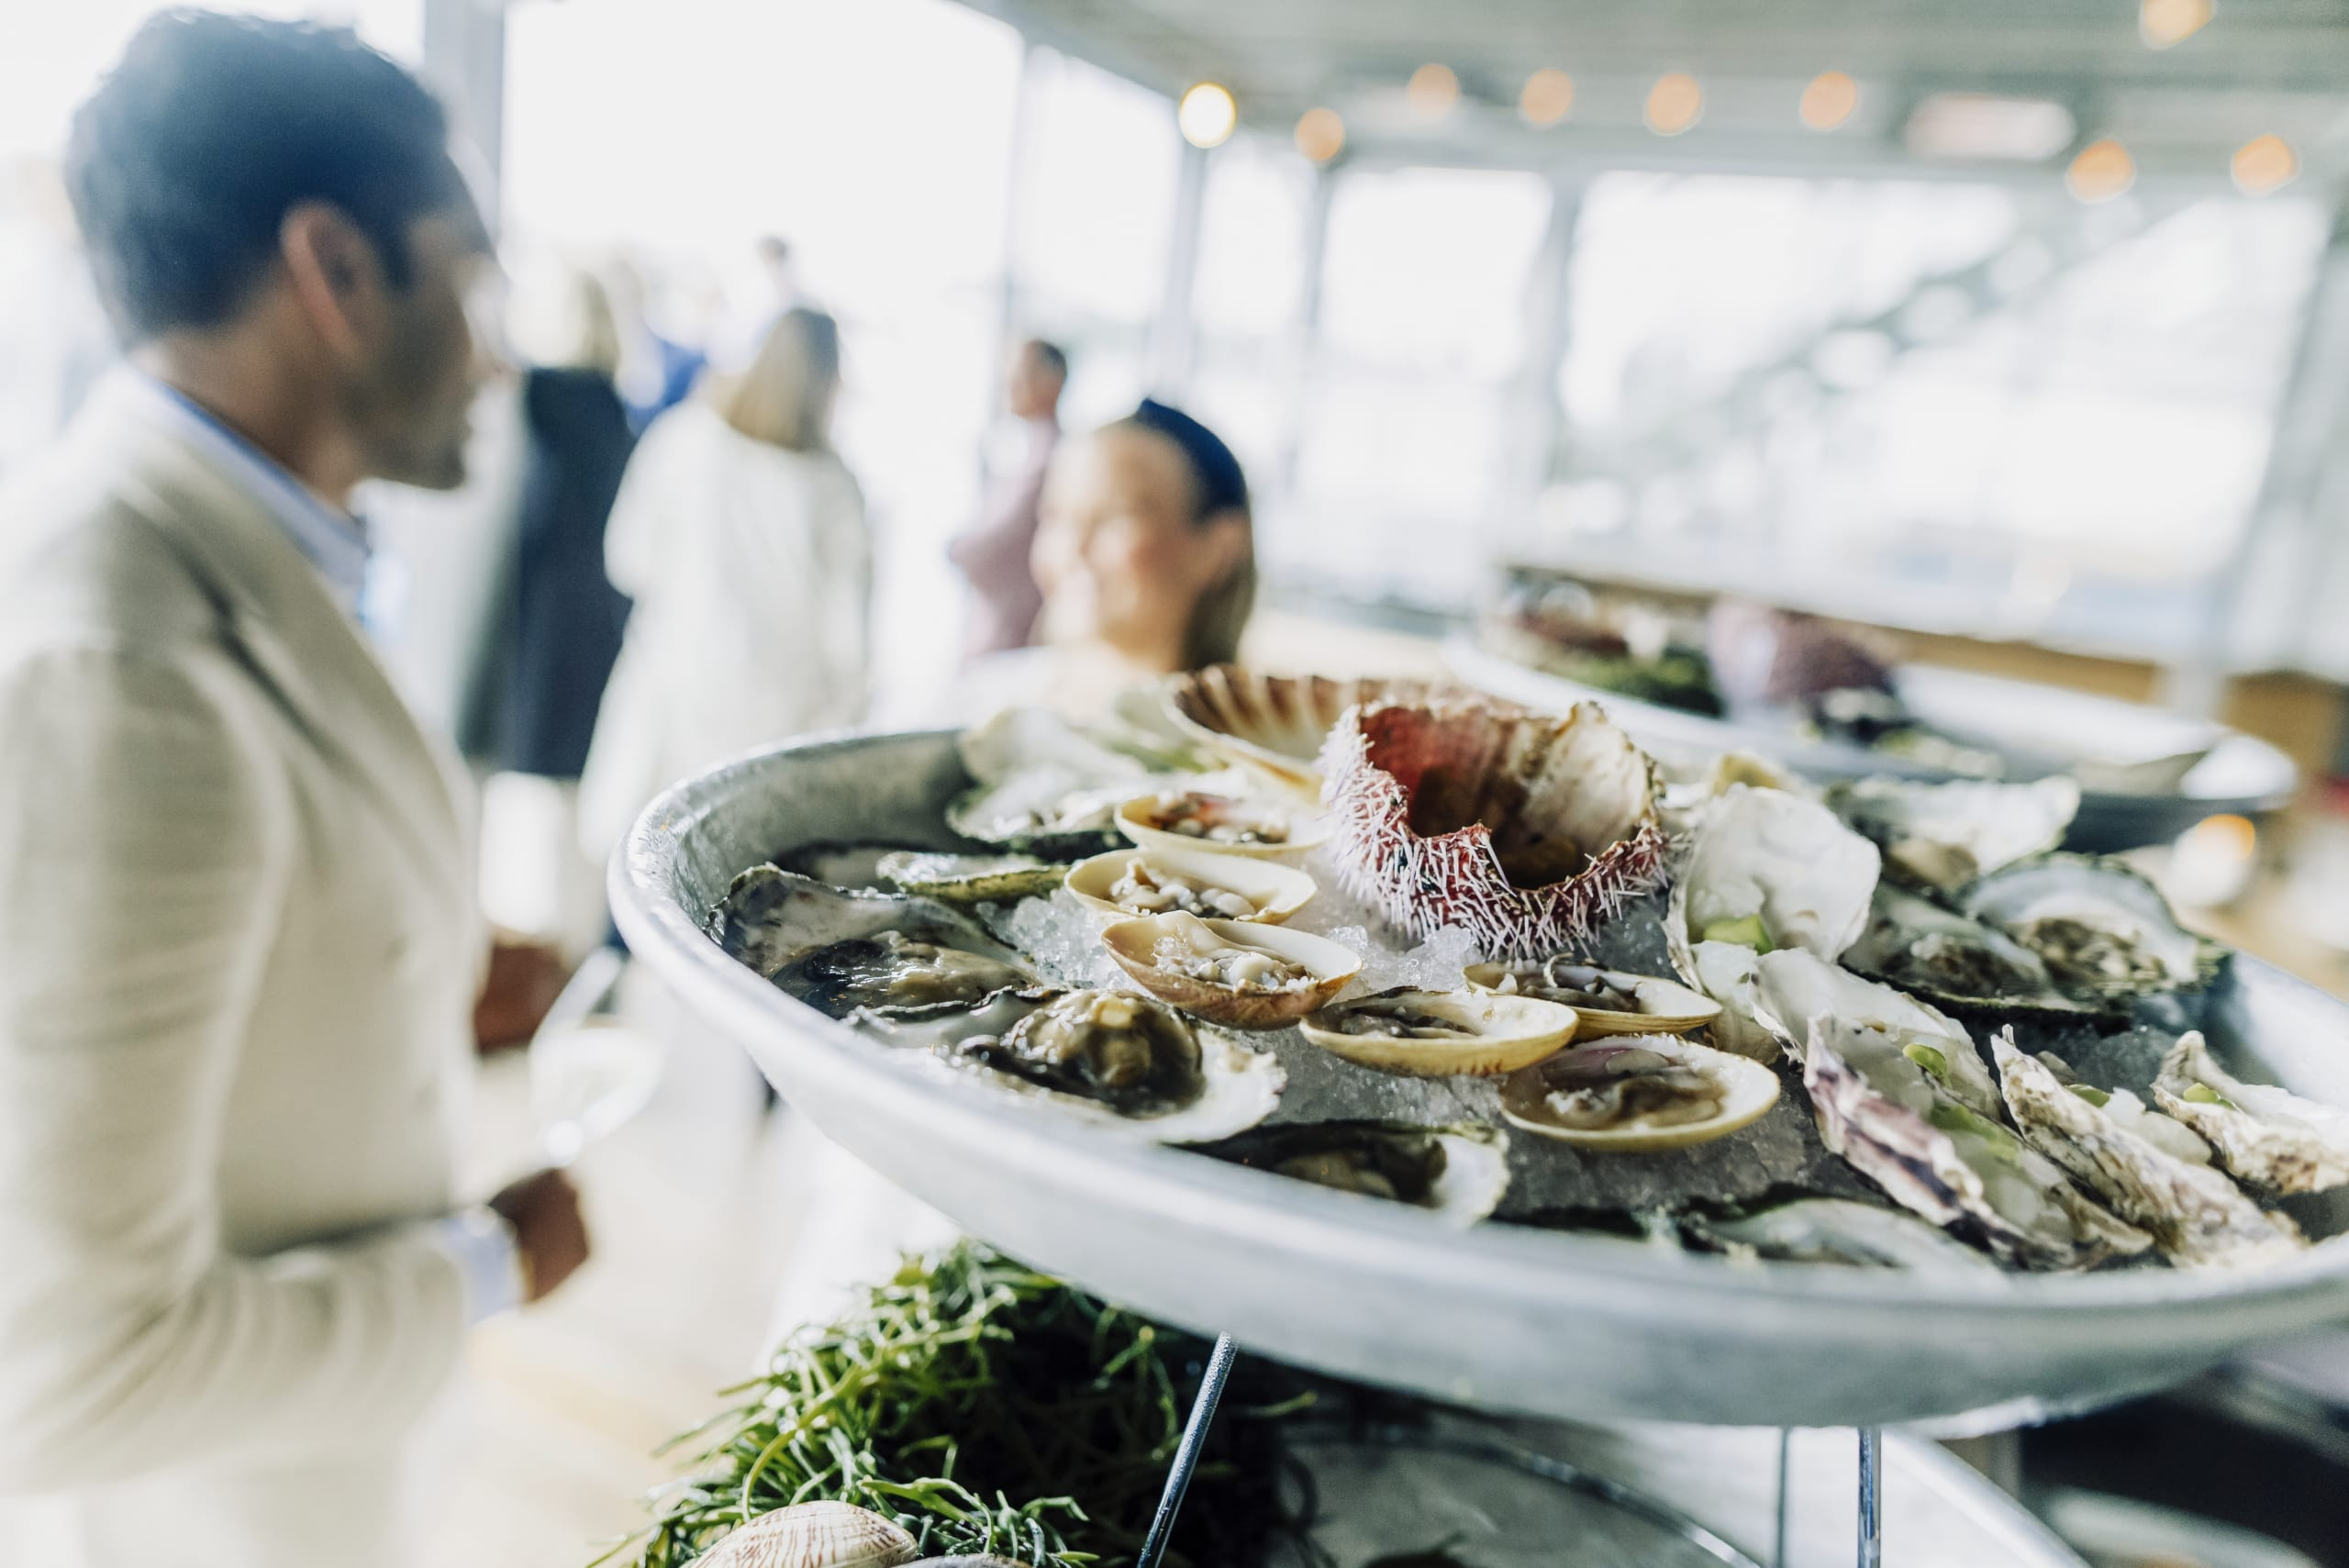 Minute fresh fish and shellfish from Sotra